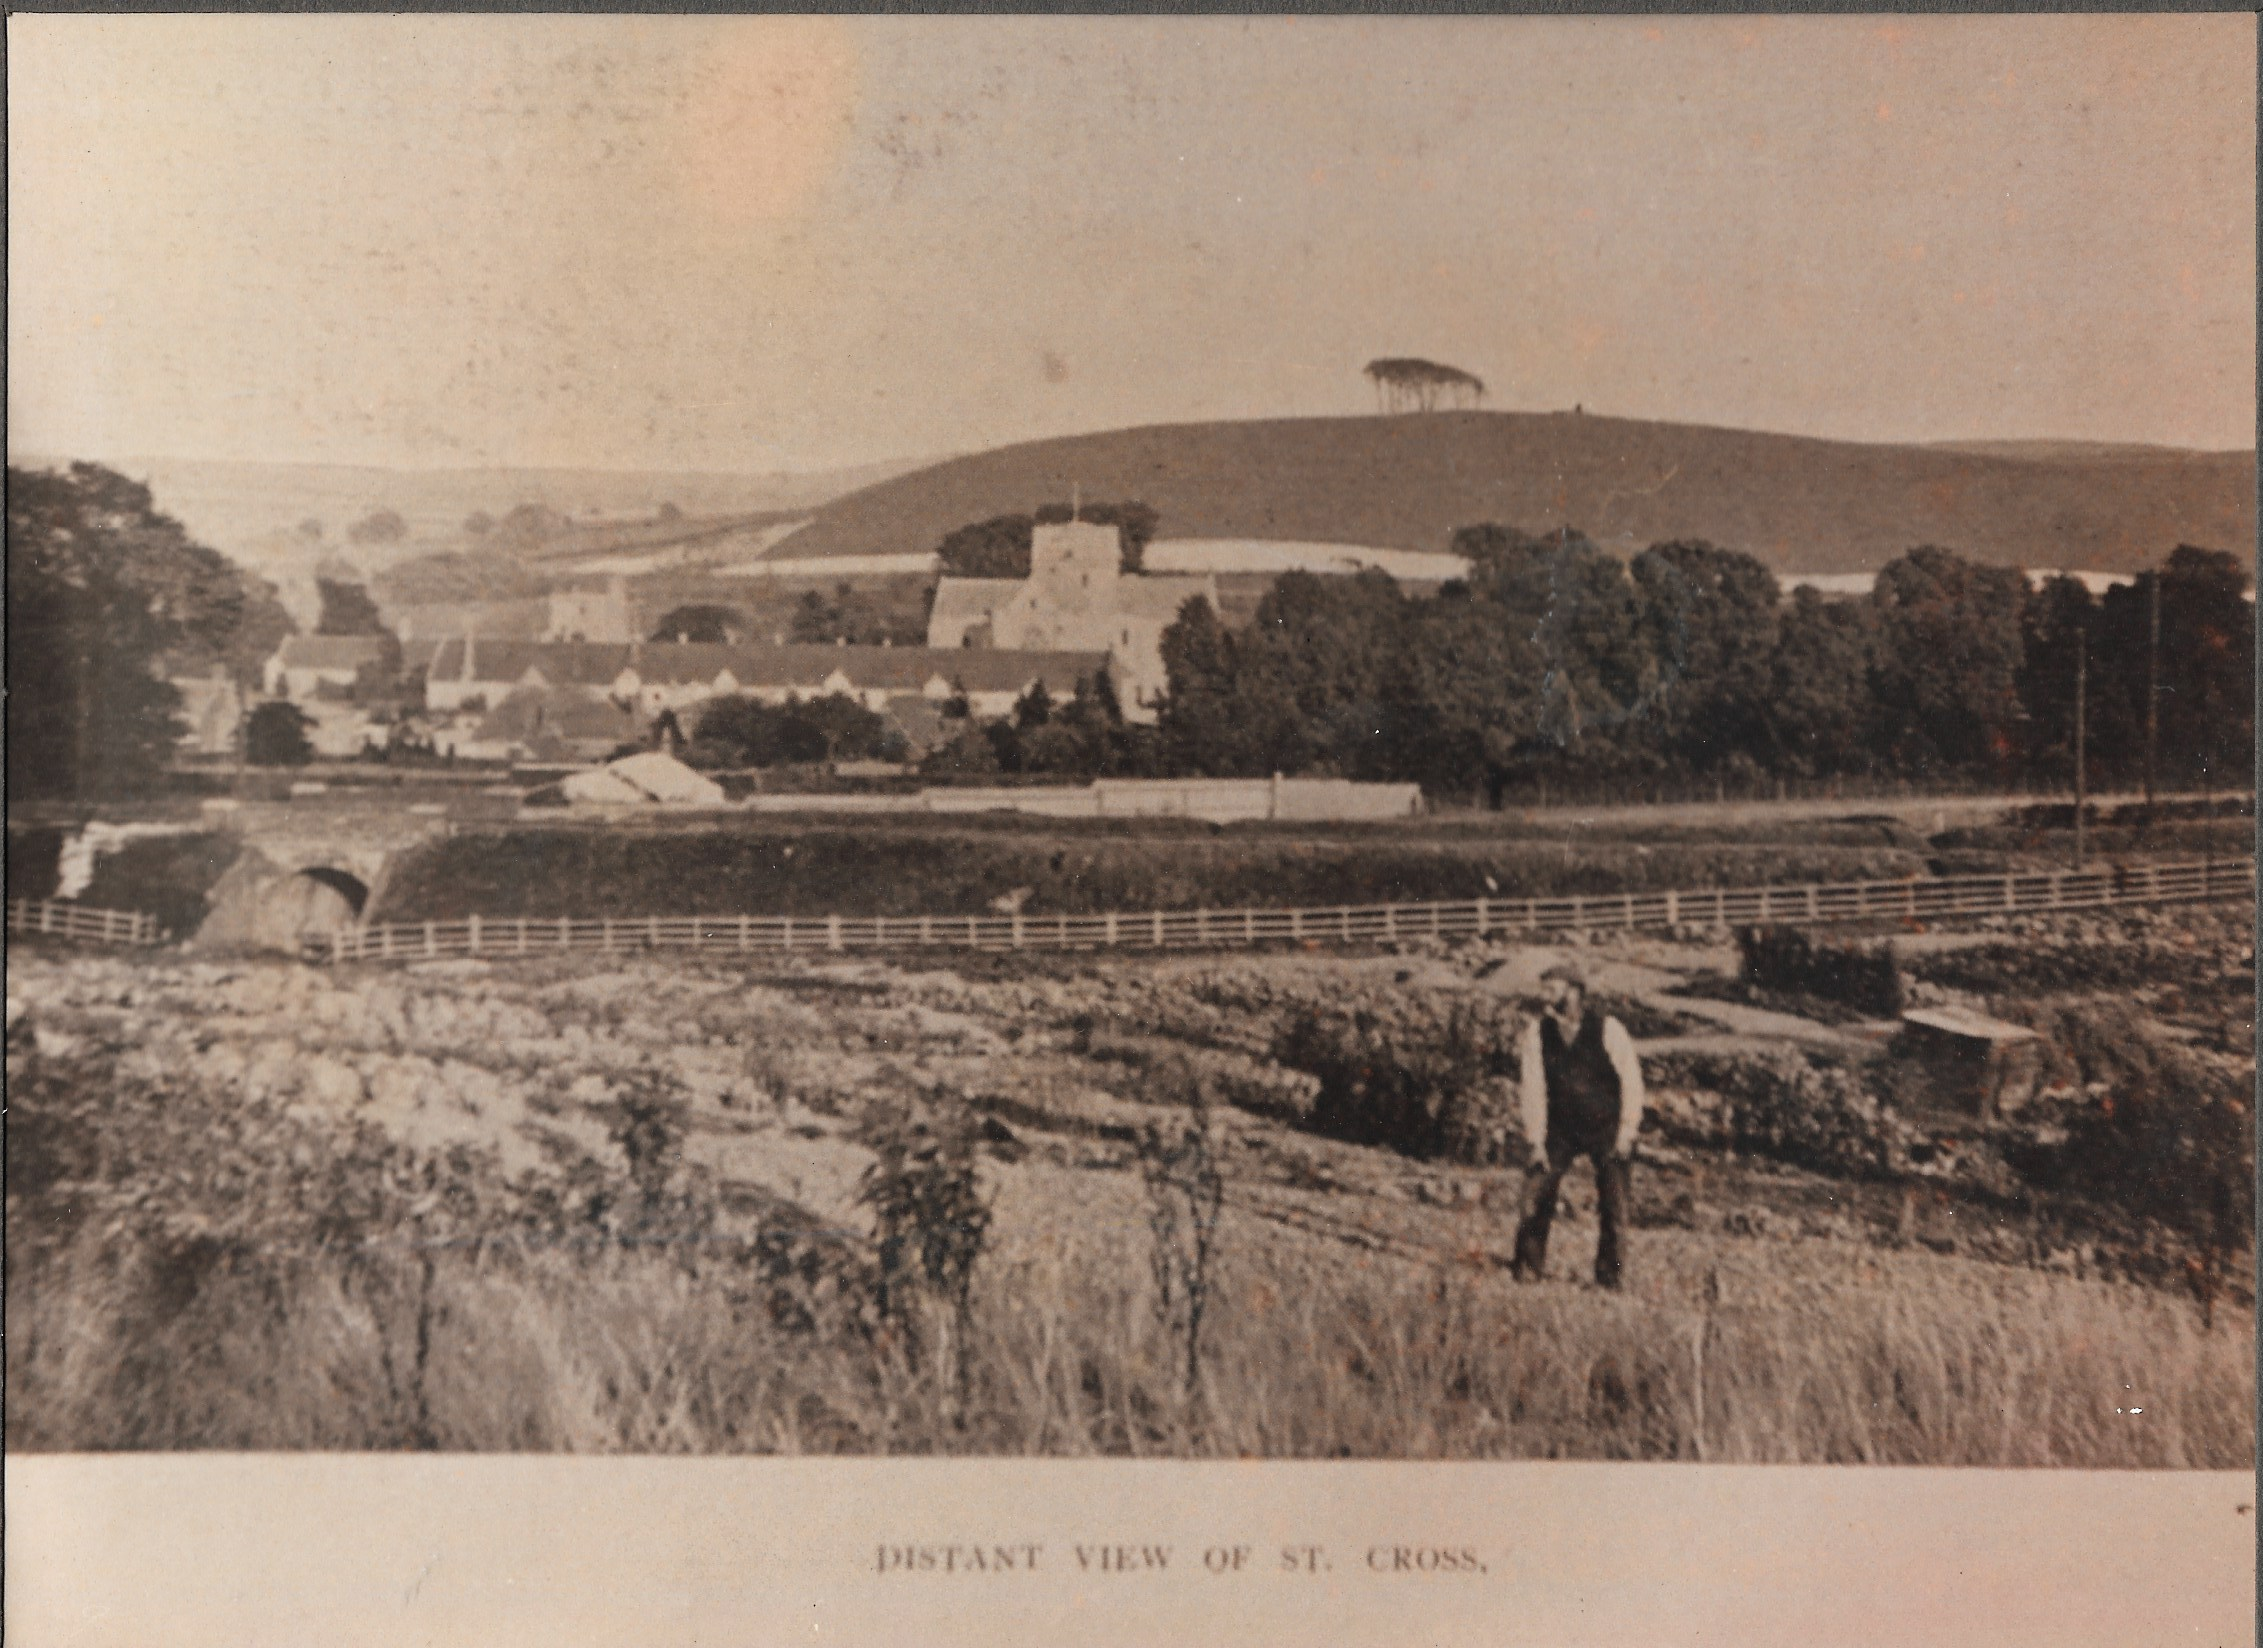 Distant view of St. Cross, Winchester - pre 1928 from the land that Stanmore School was built on.